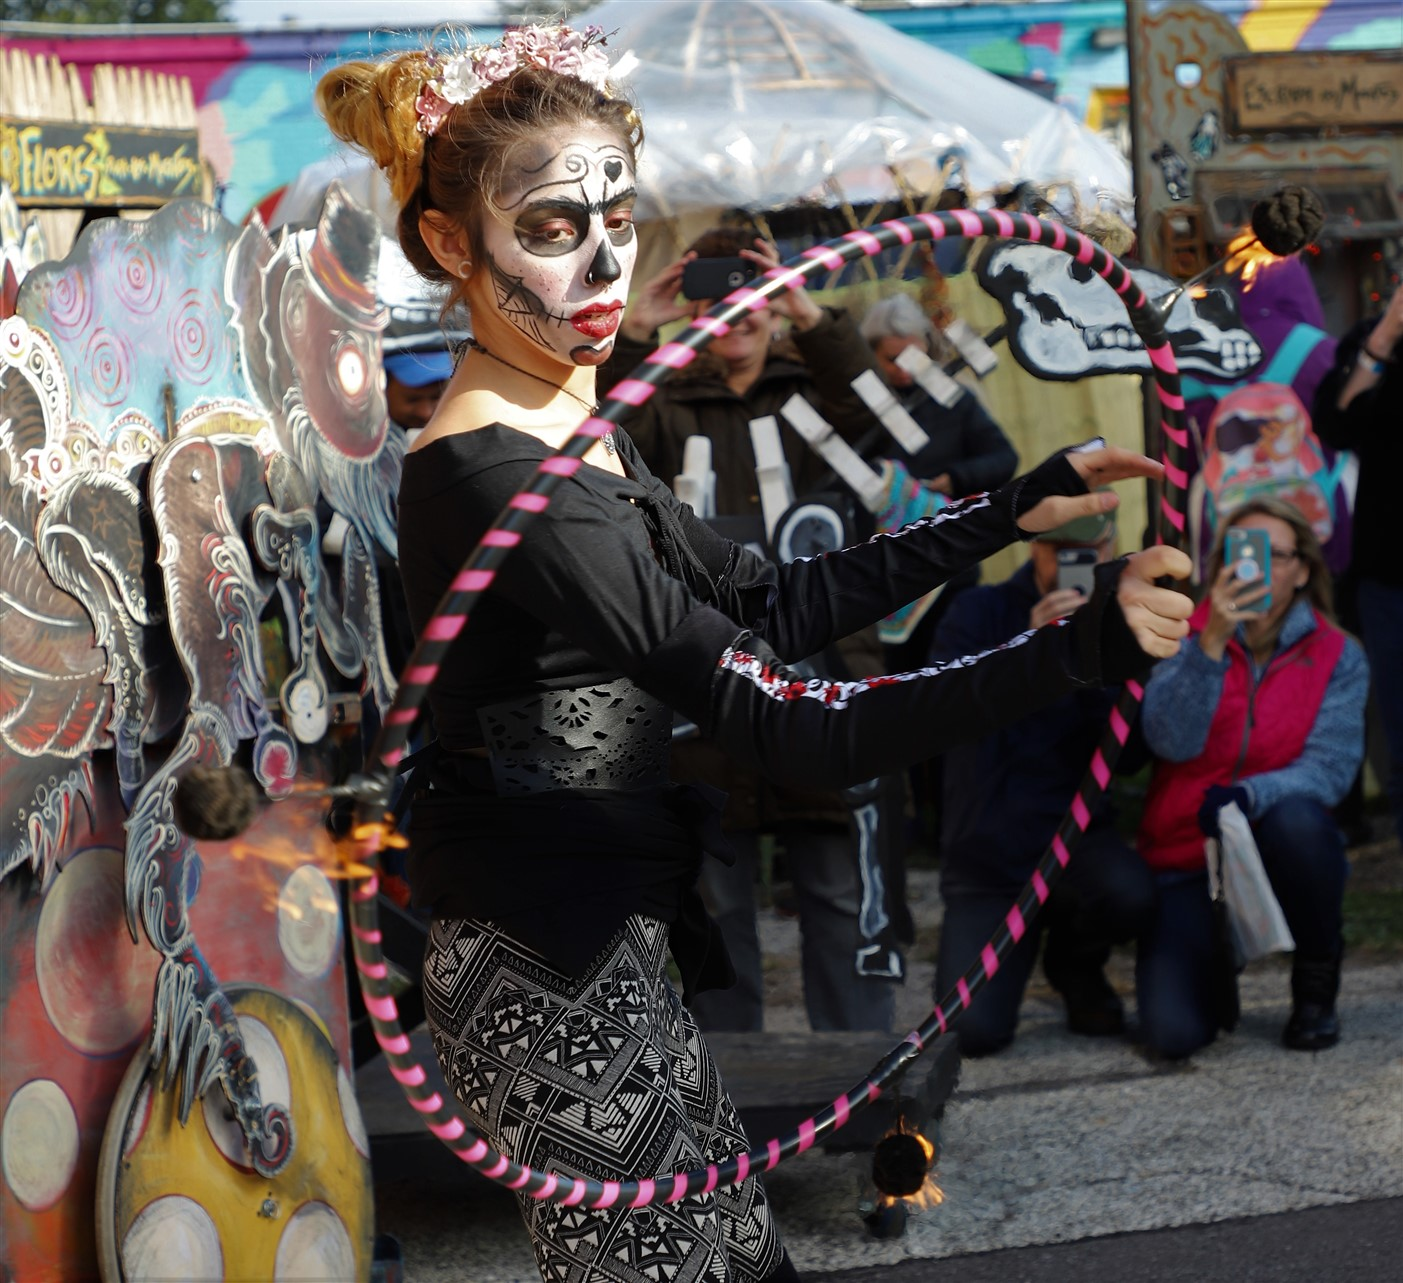 2018 11 03 134 Cleveland Day of the Dead Parade.jpg